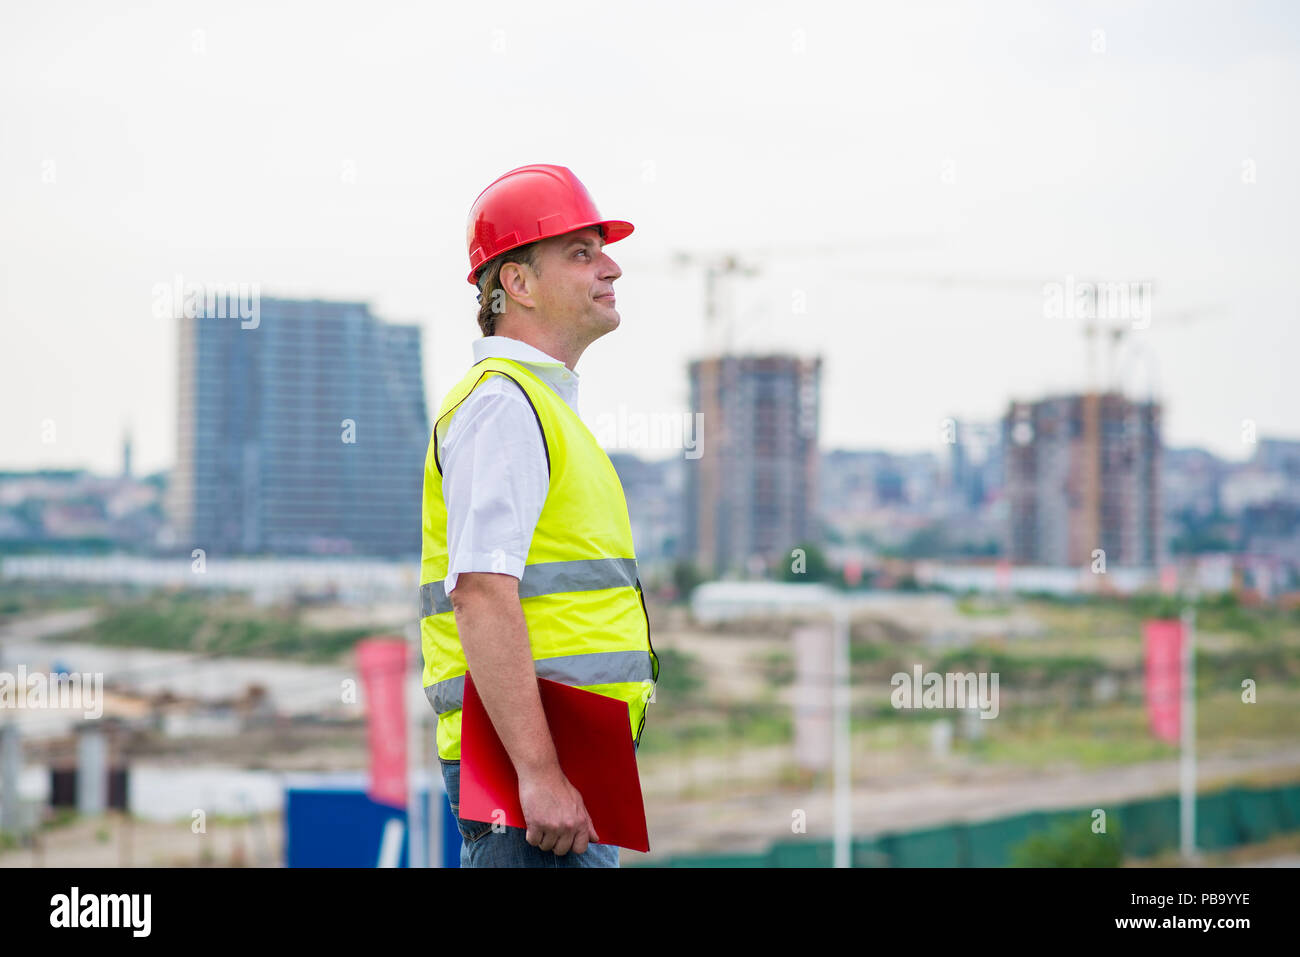 Engineer on a construction site wearing yellow reflective west and red helmet with buildings and cranes in the background. Foreman on a building site - Stock Image